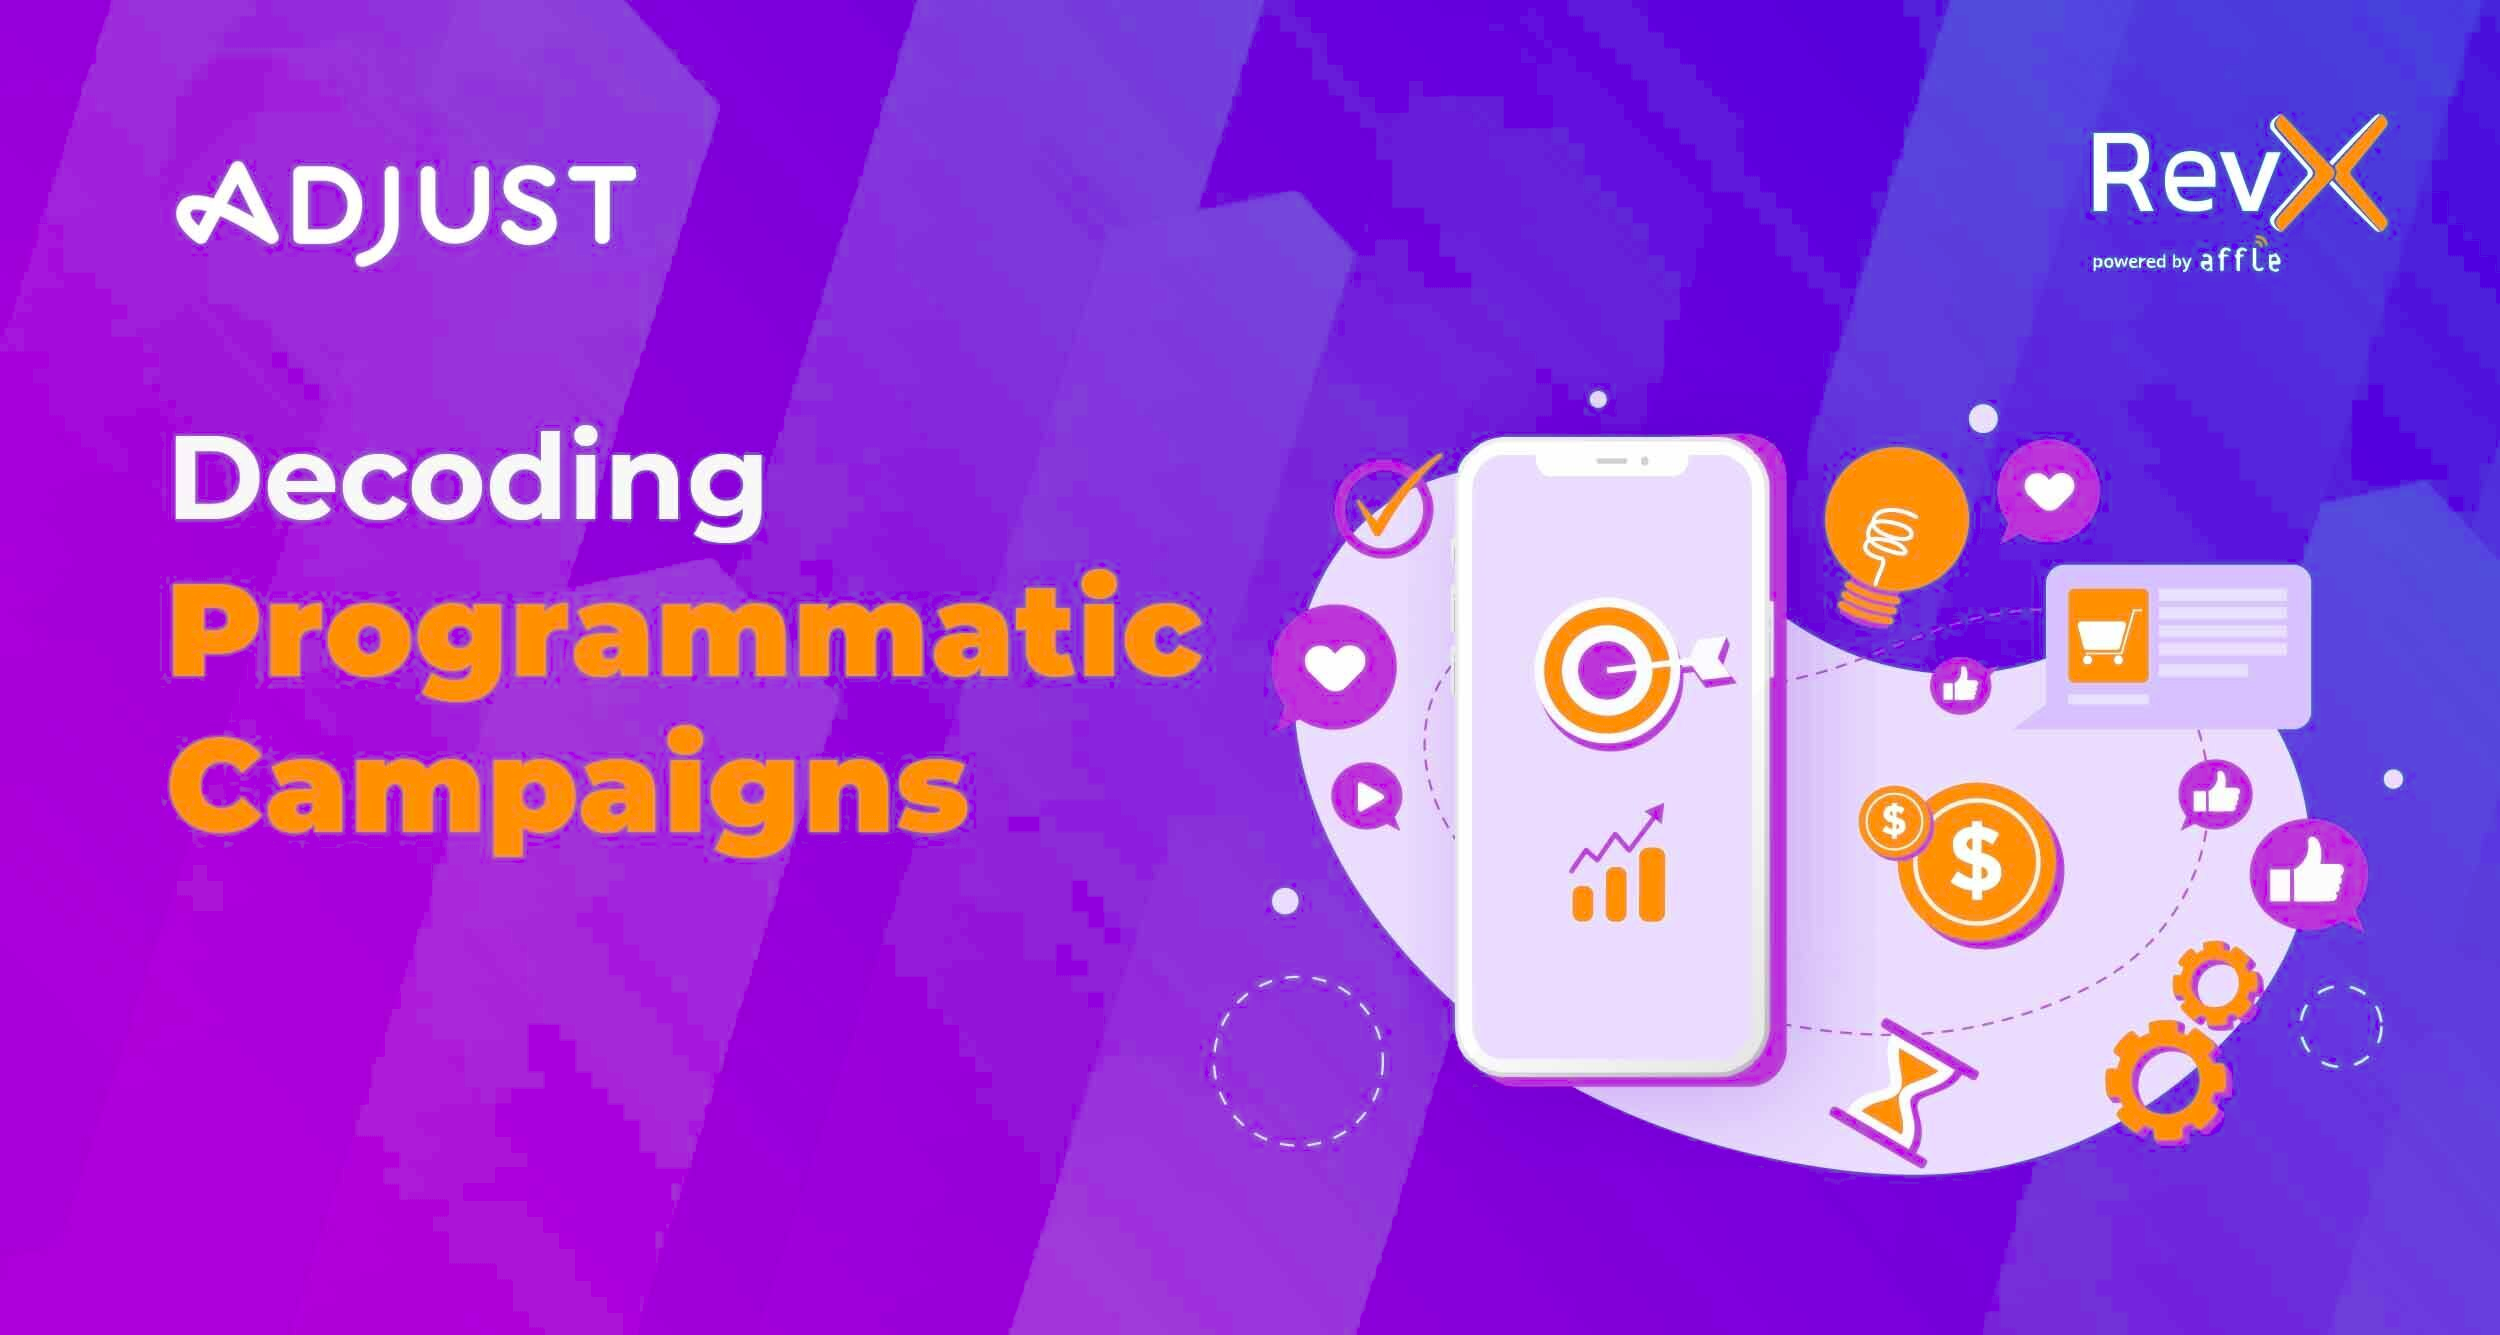 Decoding Programmatic Campaigns - Insights for Advertisers Looking For Incremental App Growth From Adjust & RevX